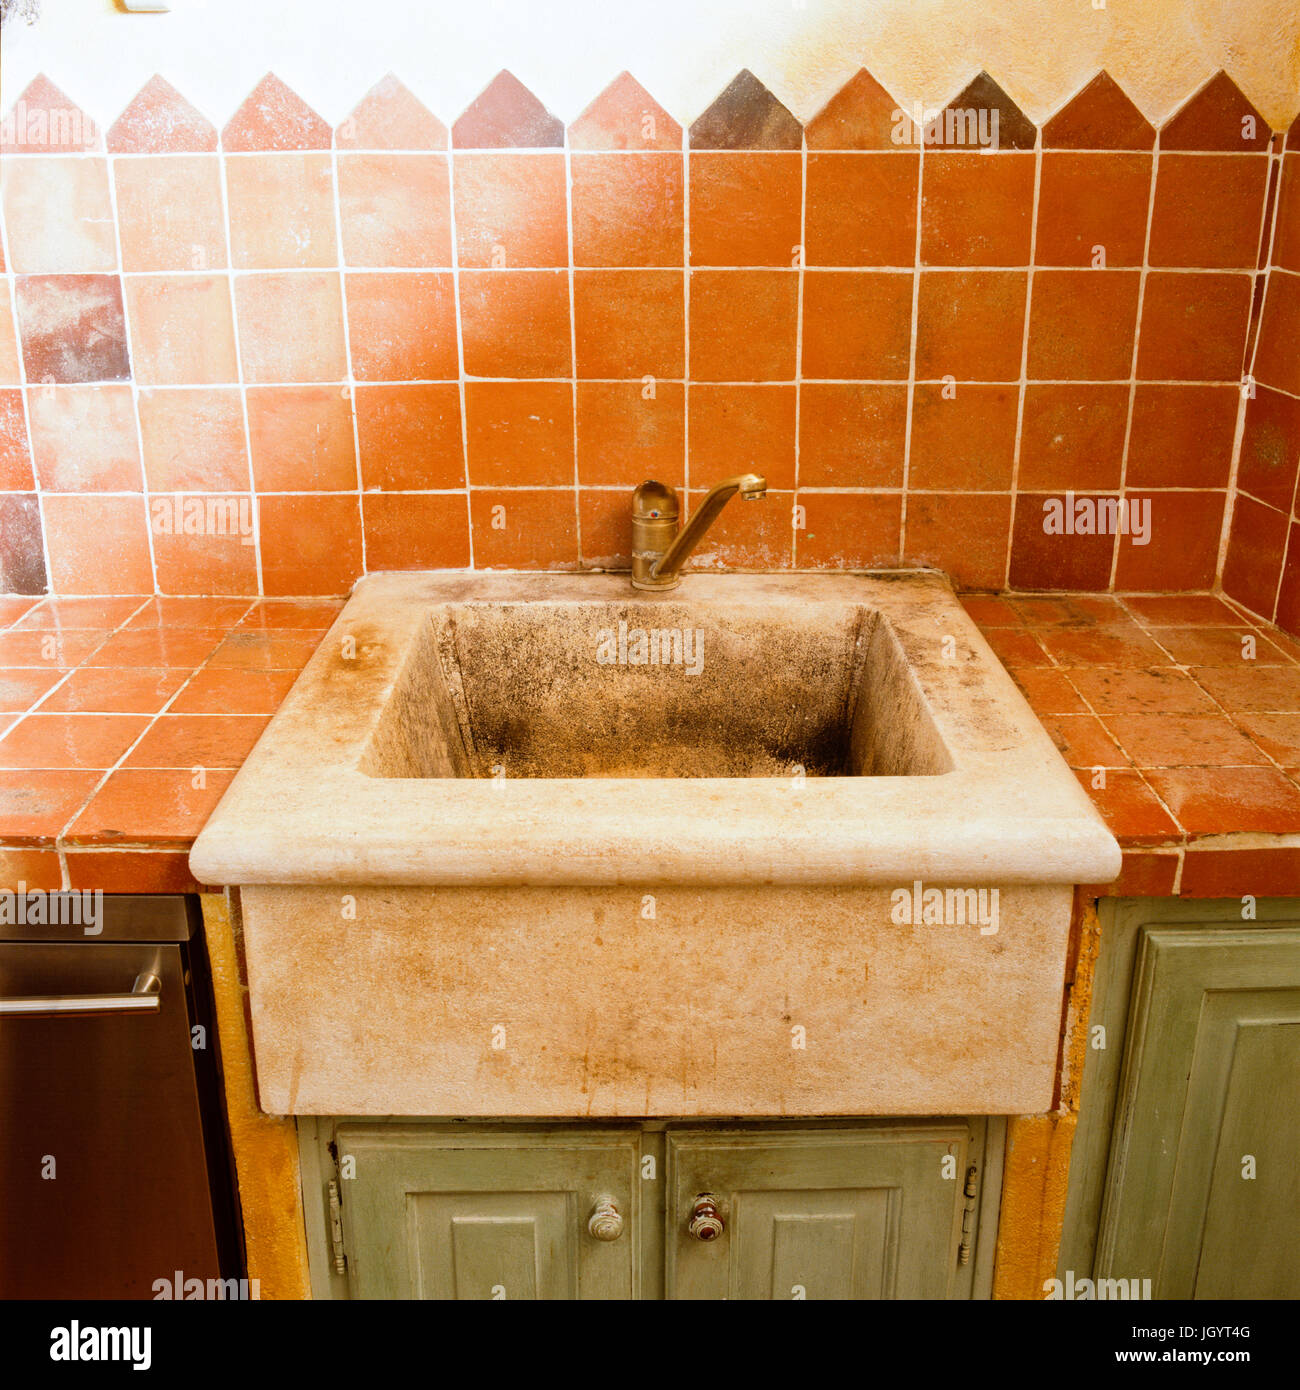 Distressed kitchen sink - Stock Image